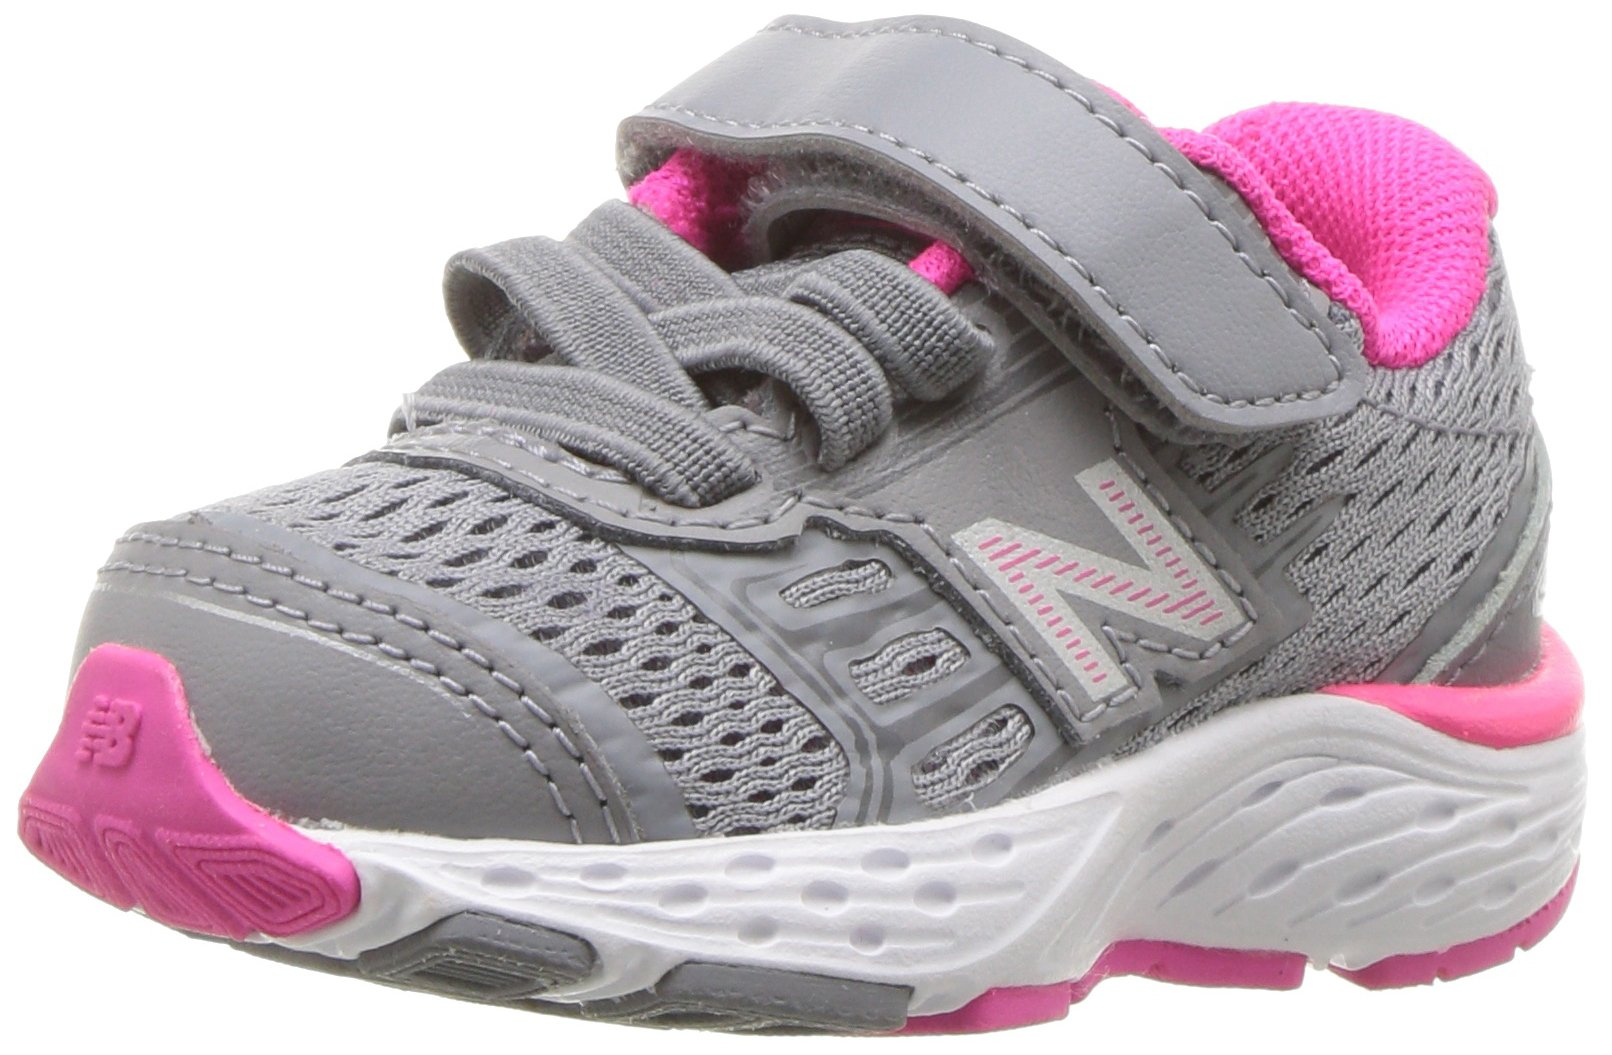 New Balance Girls' 680V5 Hook and Loop Running Shoe, Steel/Pink Glo, 10 W US Toddler